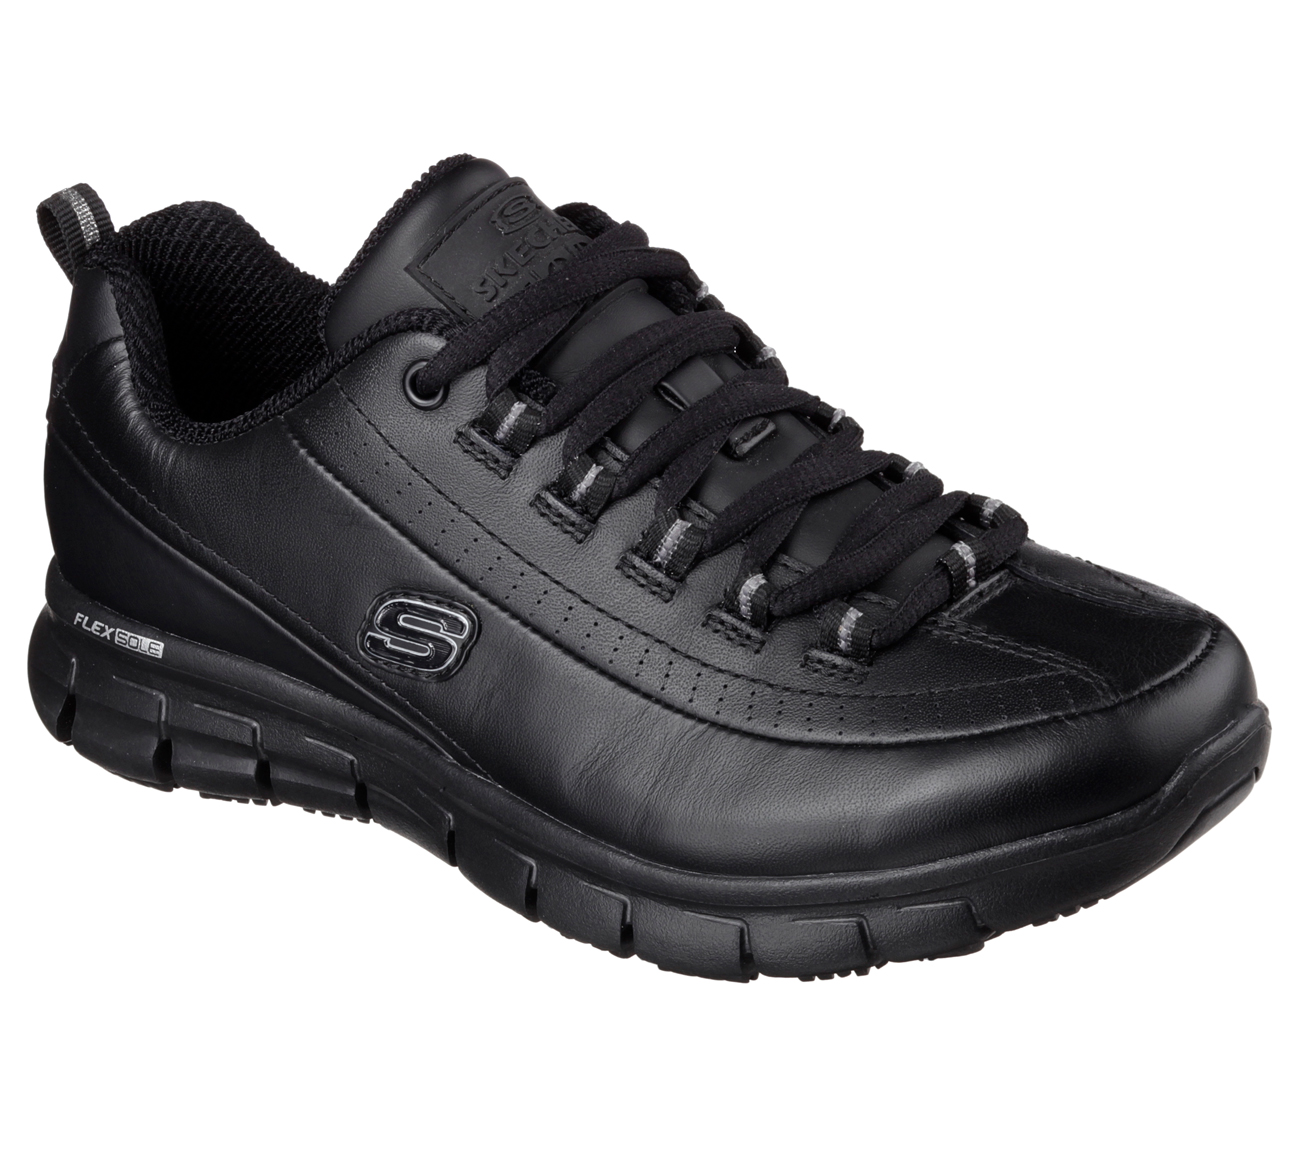 Sketcher Black Dress Shoe